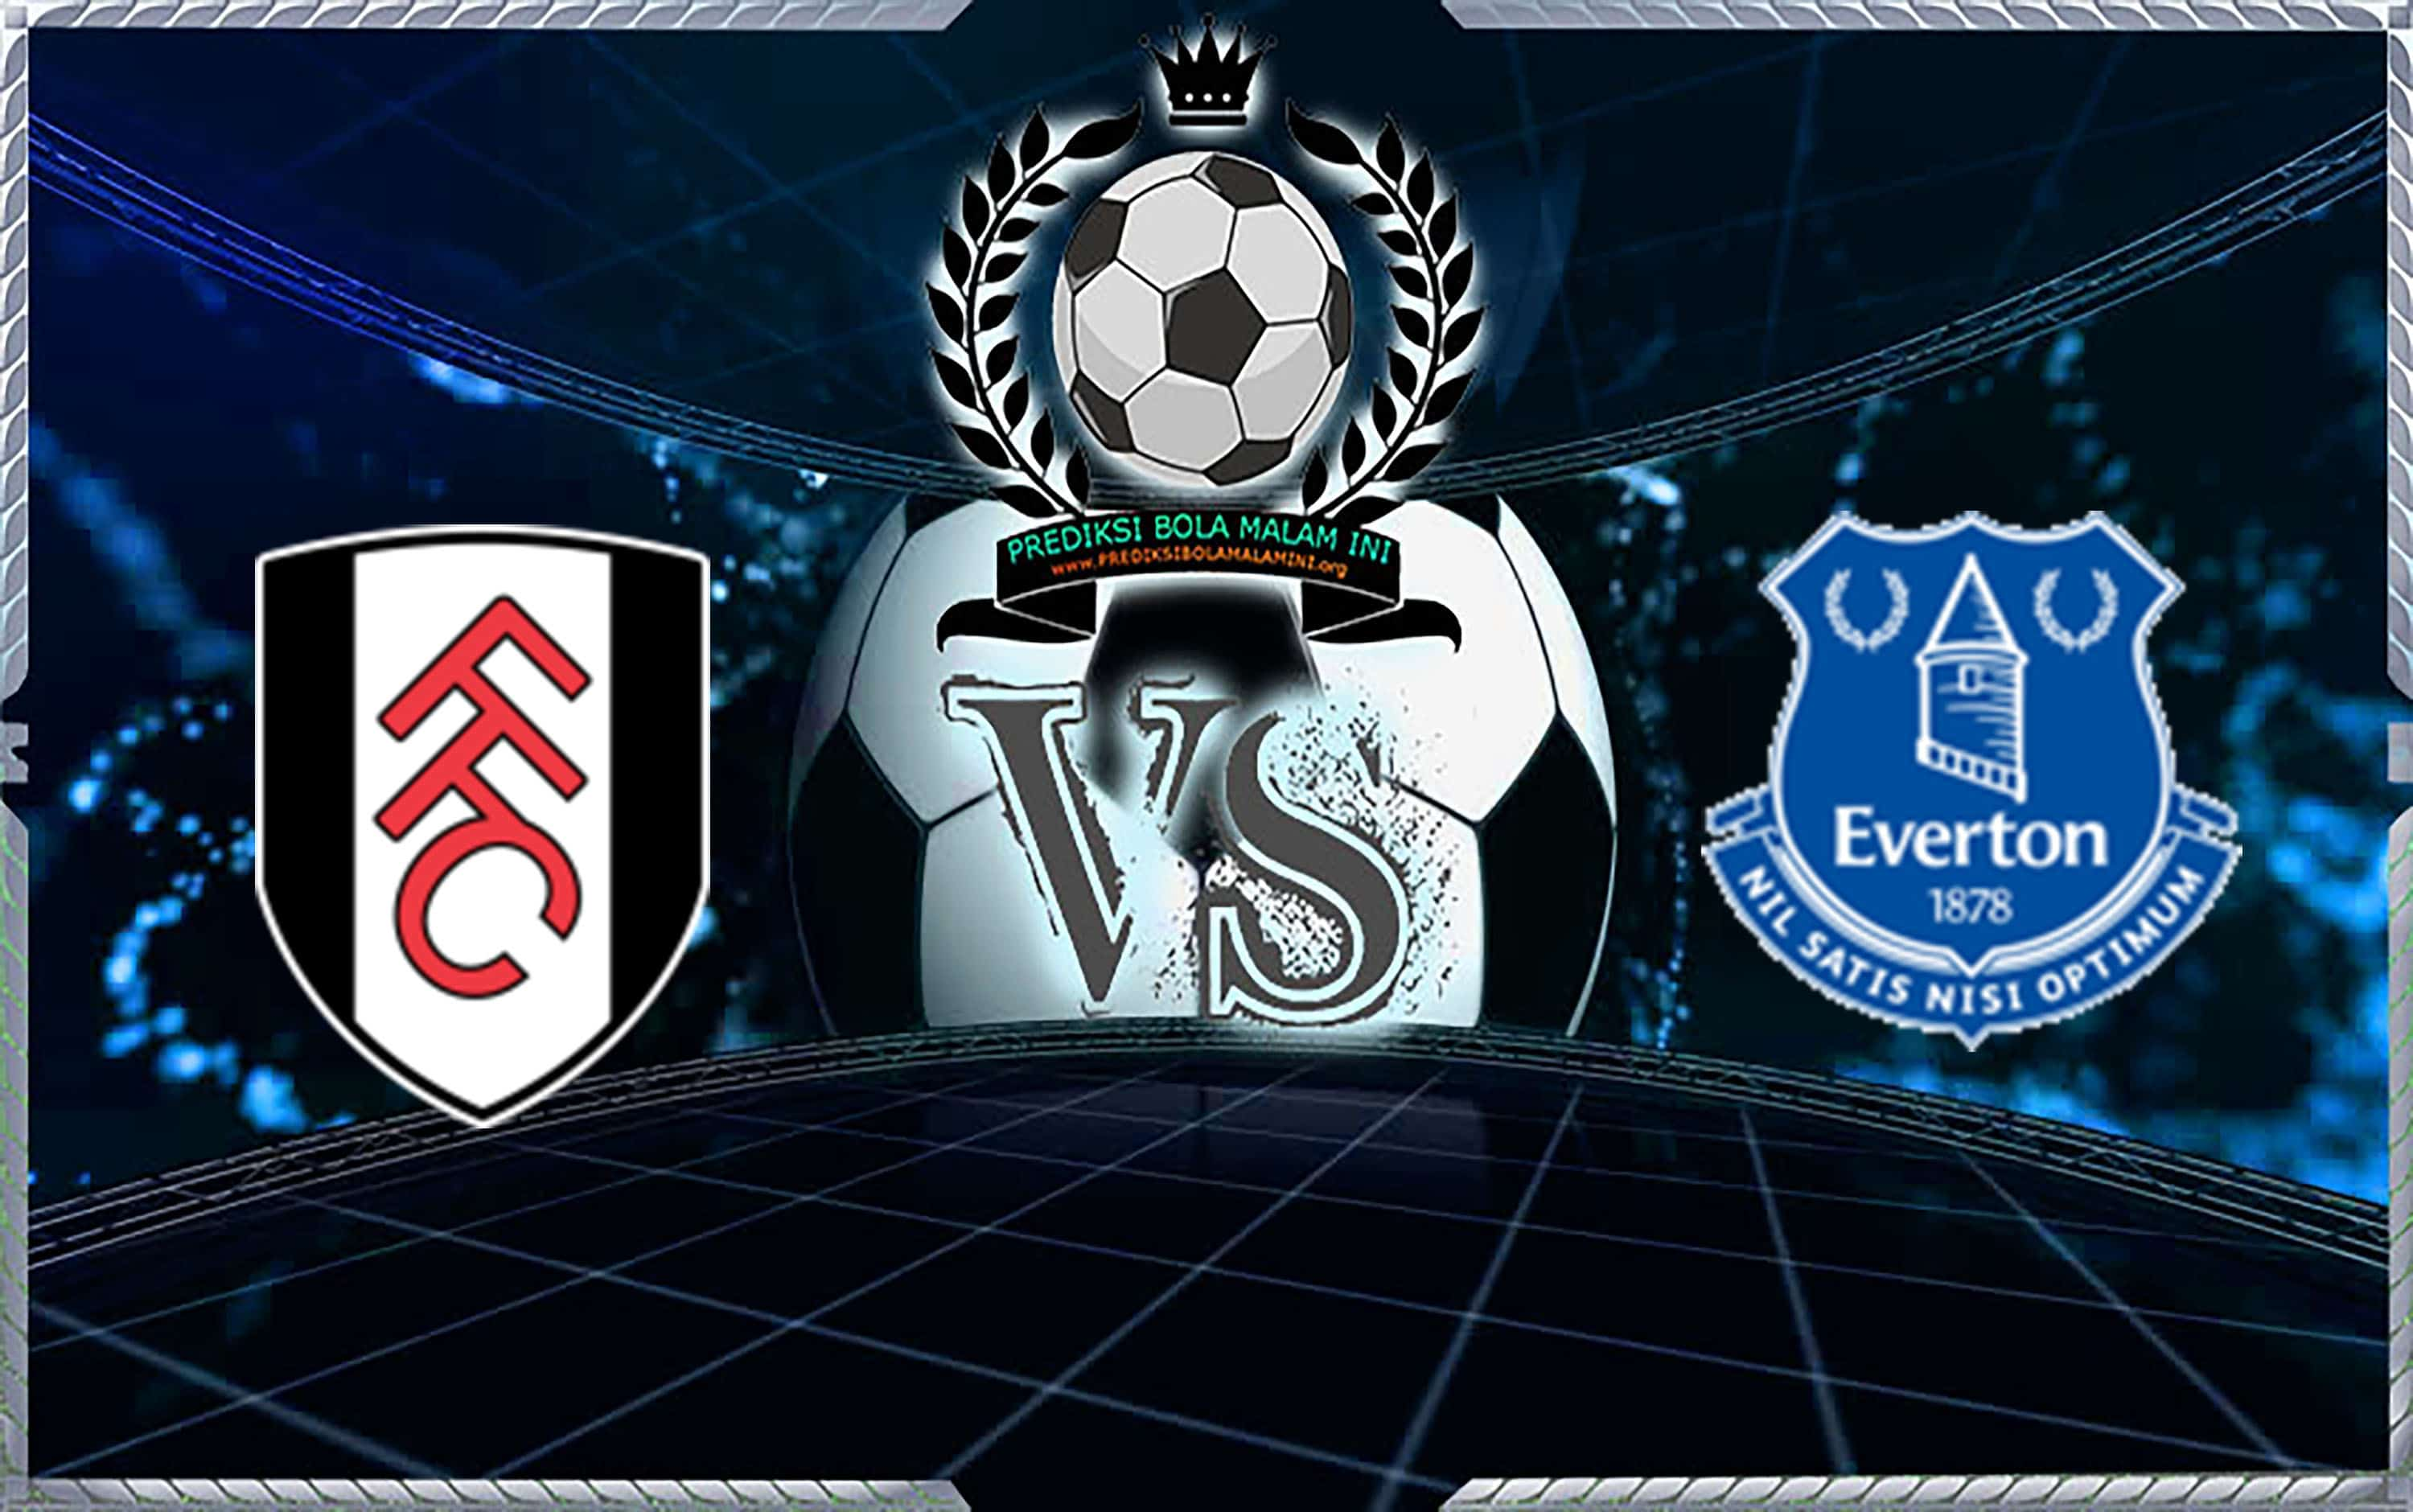 Skor Prediksi Utd Fulham Vs Everton 13 April 2019